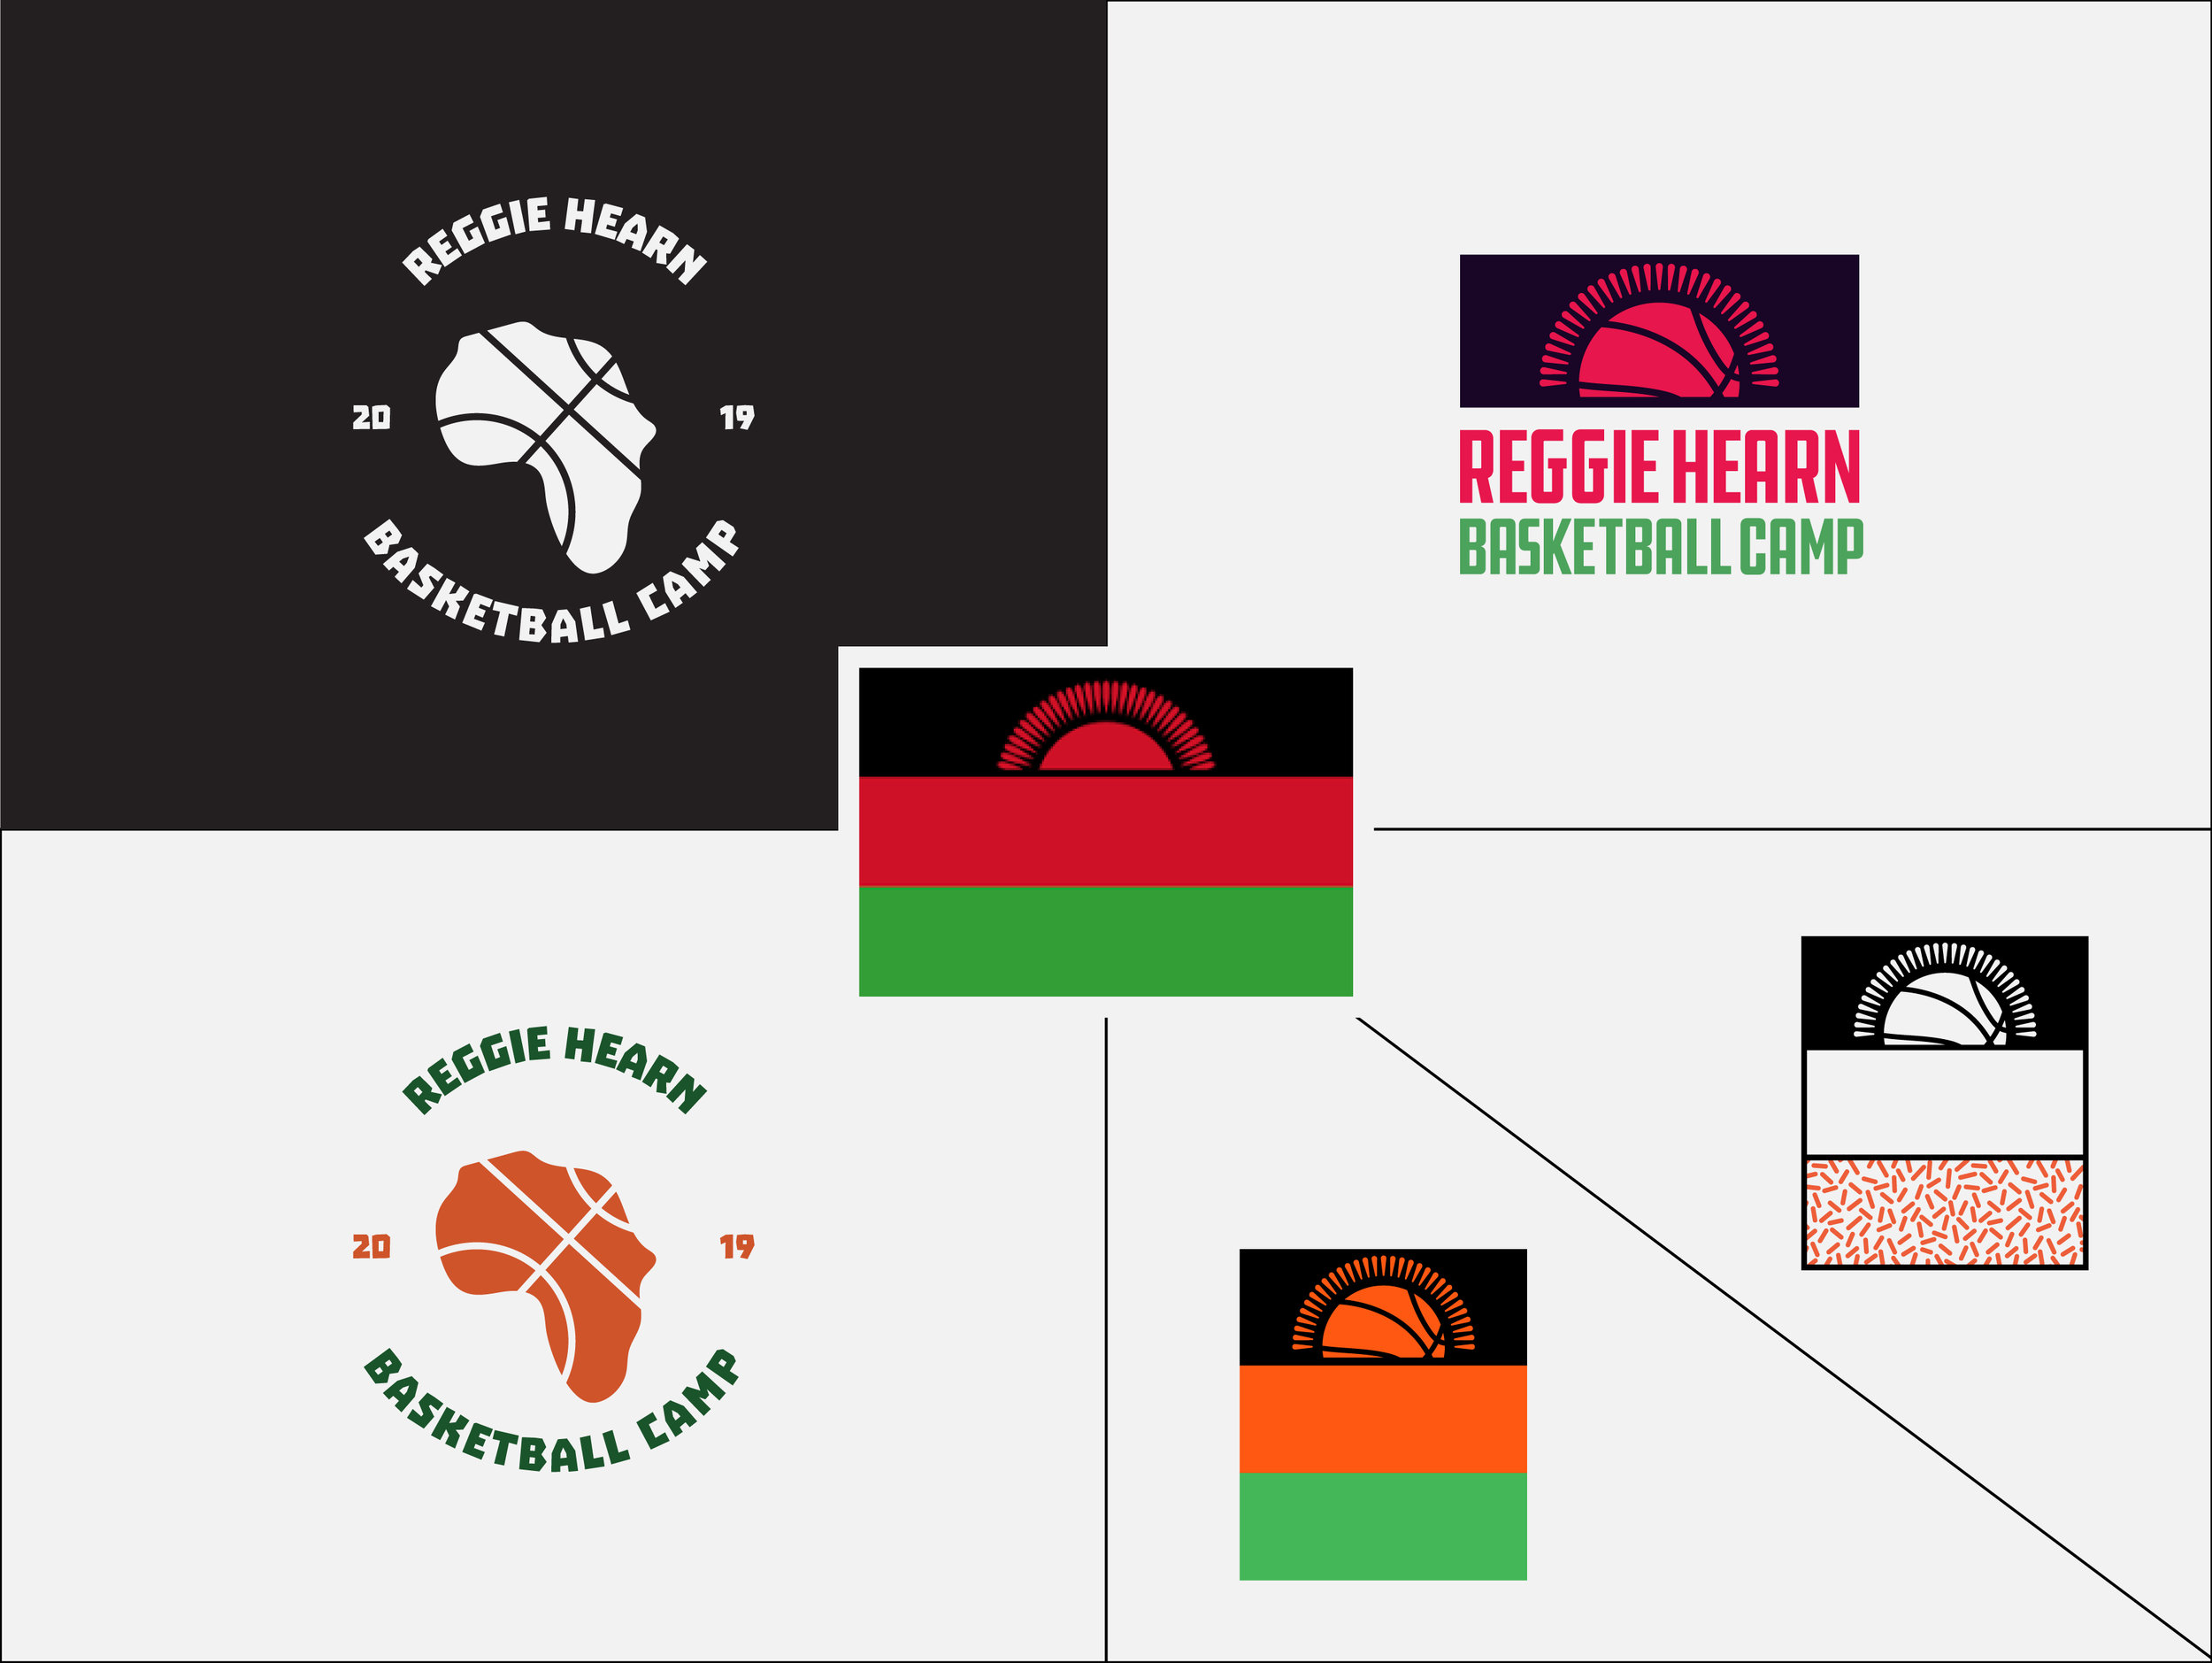 Malawi flag in the center. Exploring approaches for a primary mark.